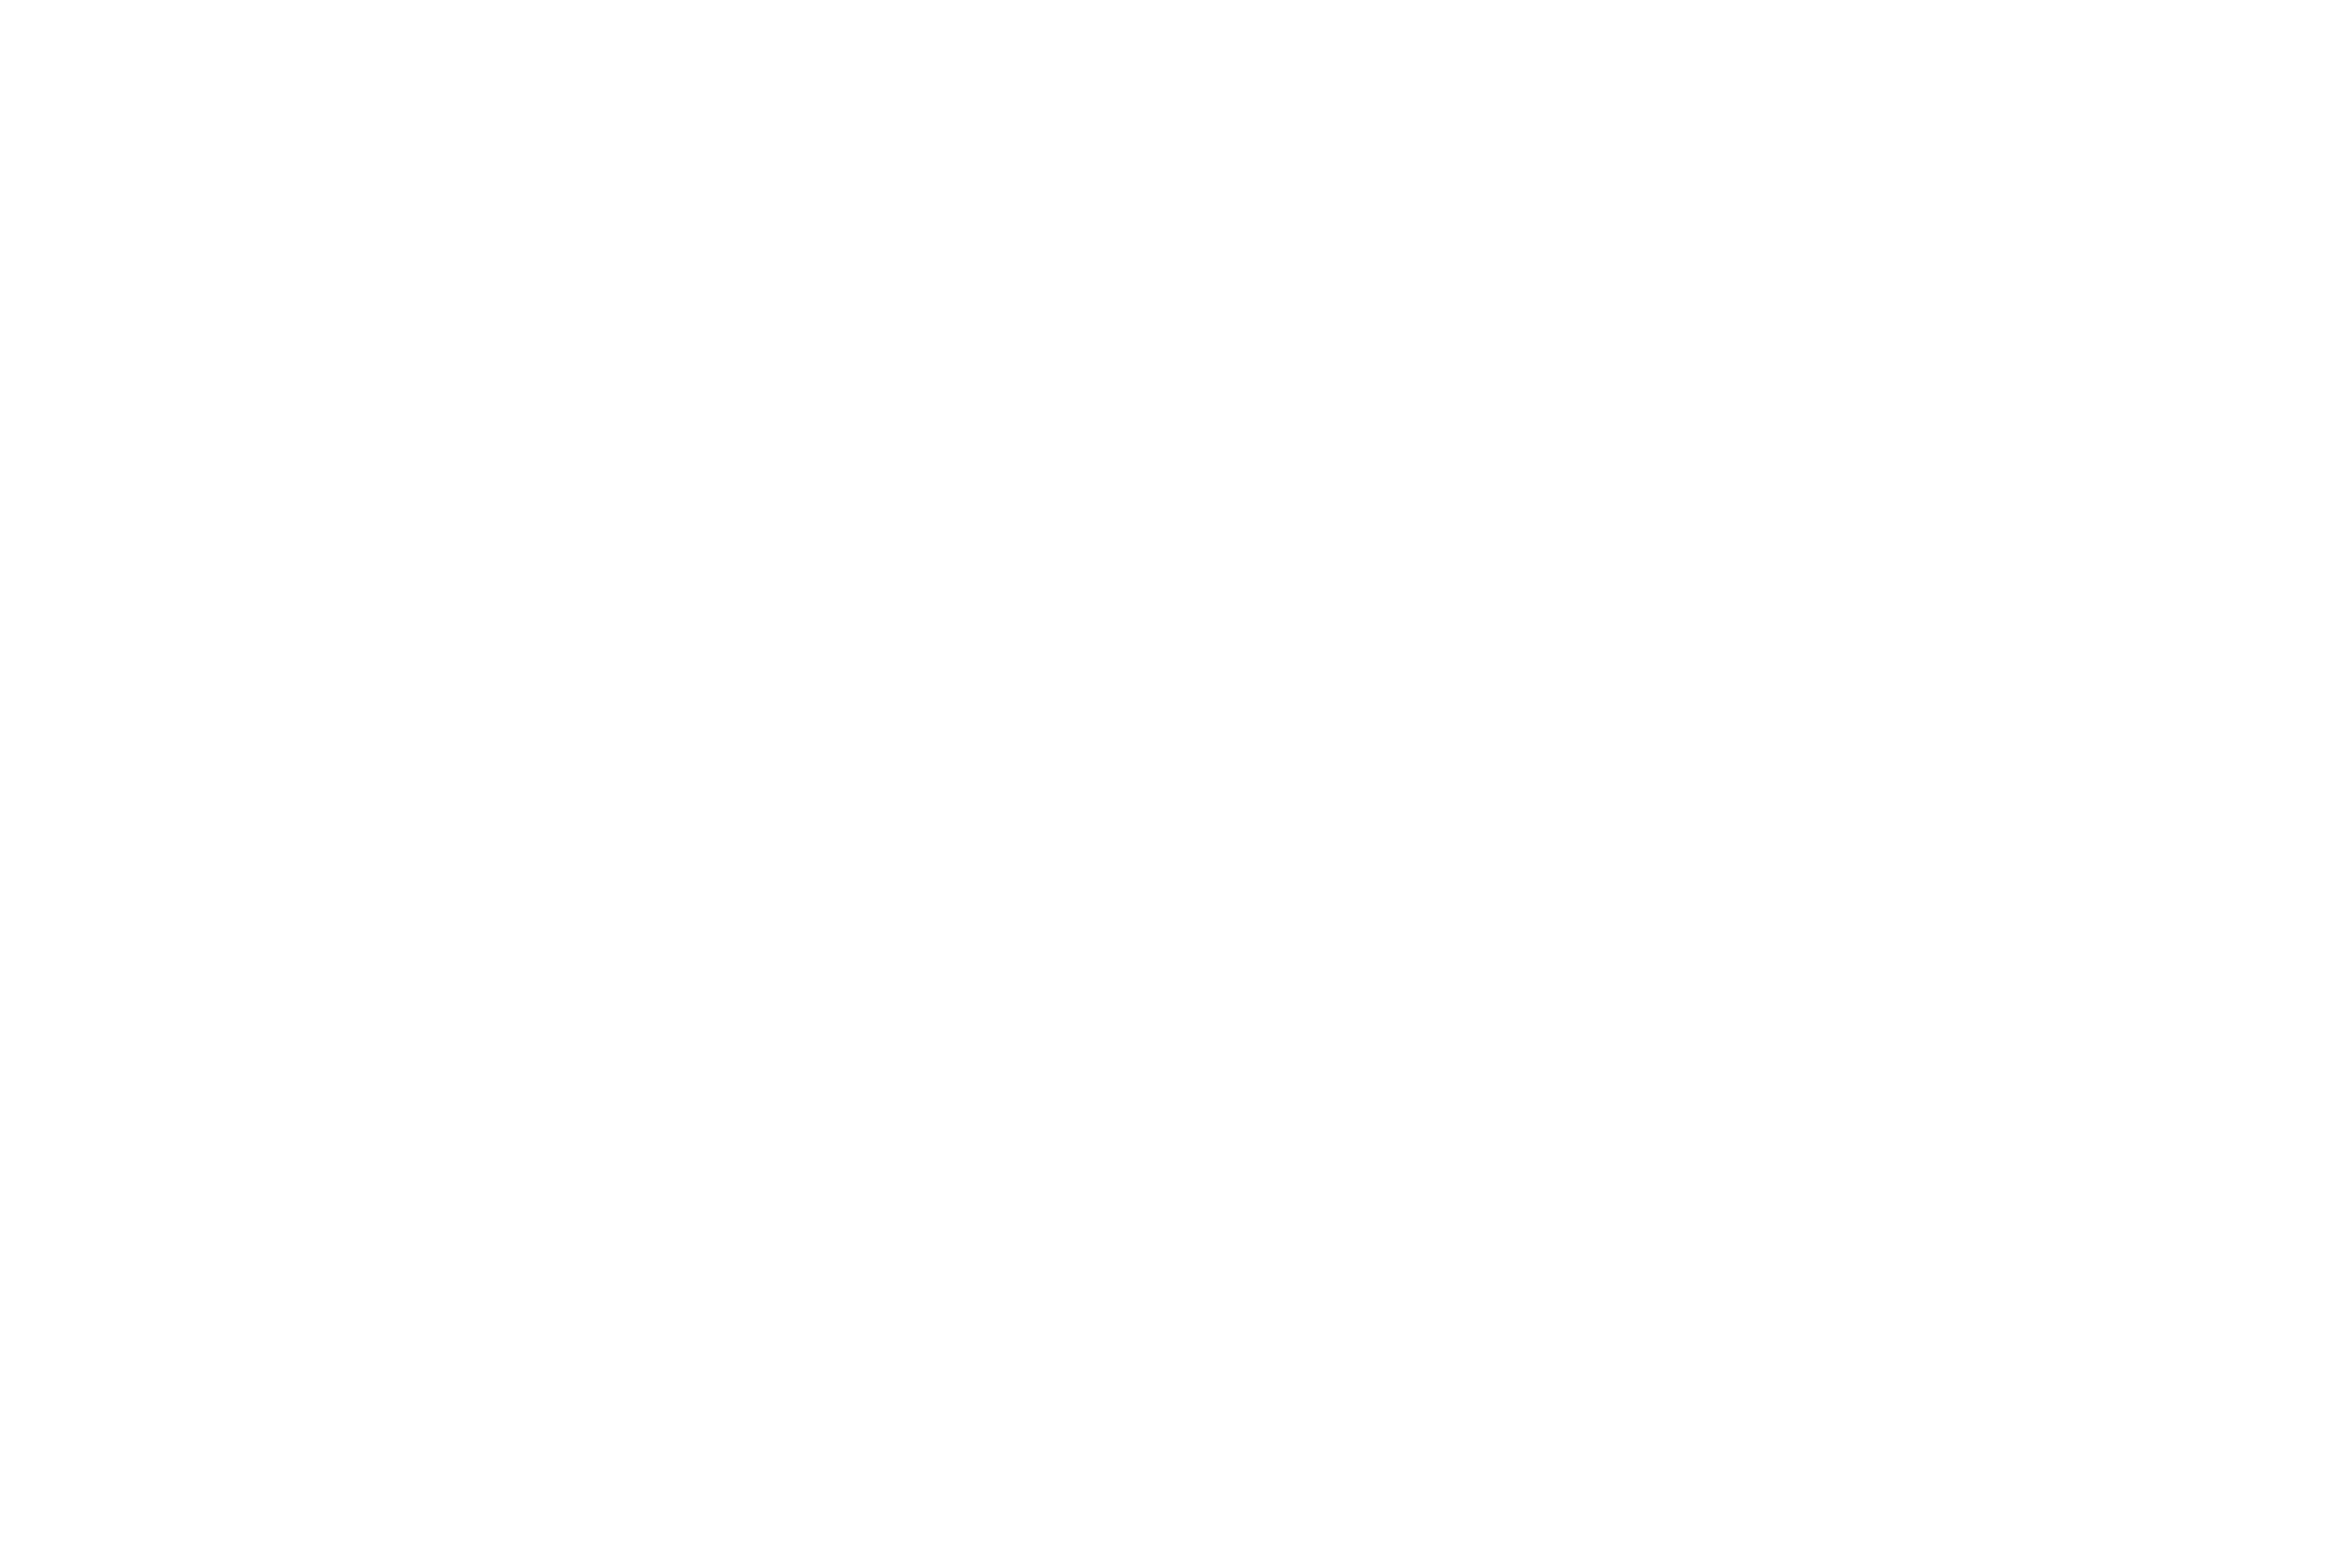 Judy Keown Photography